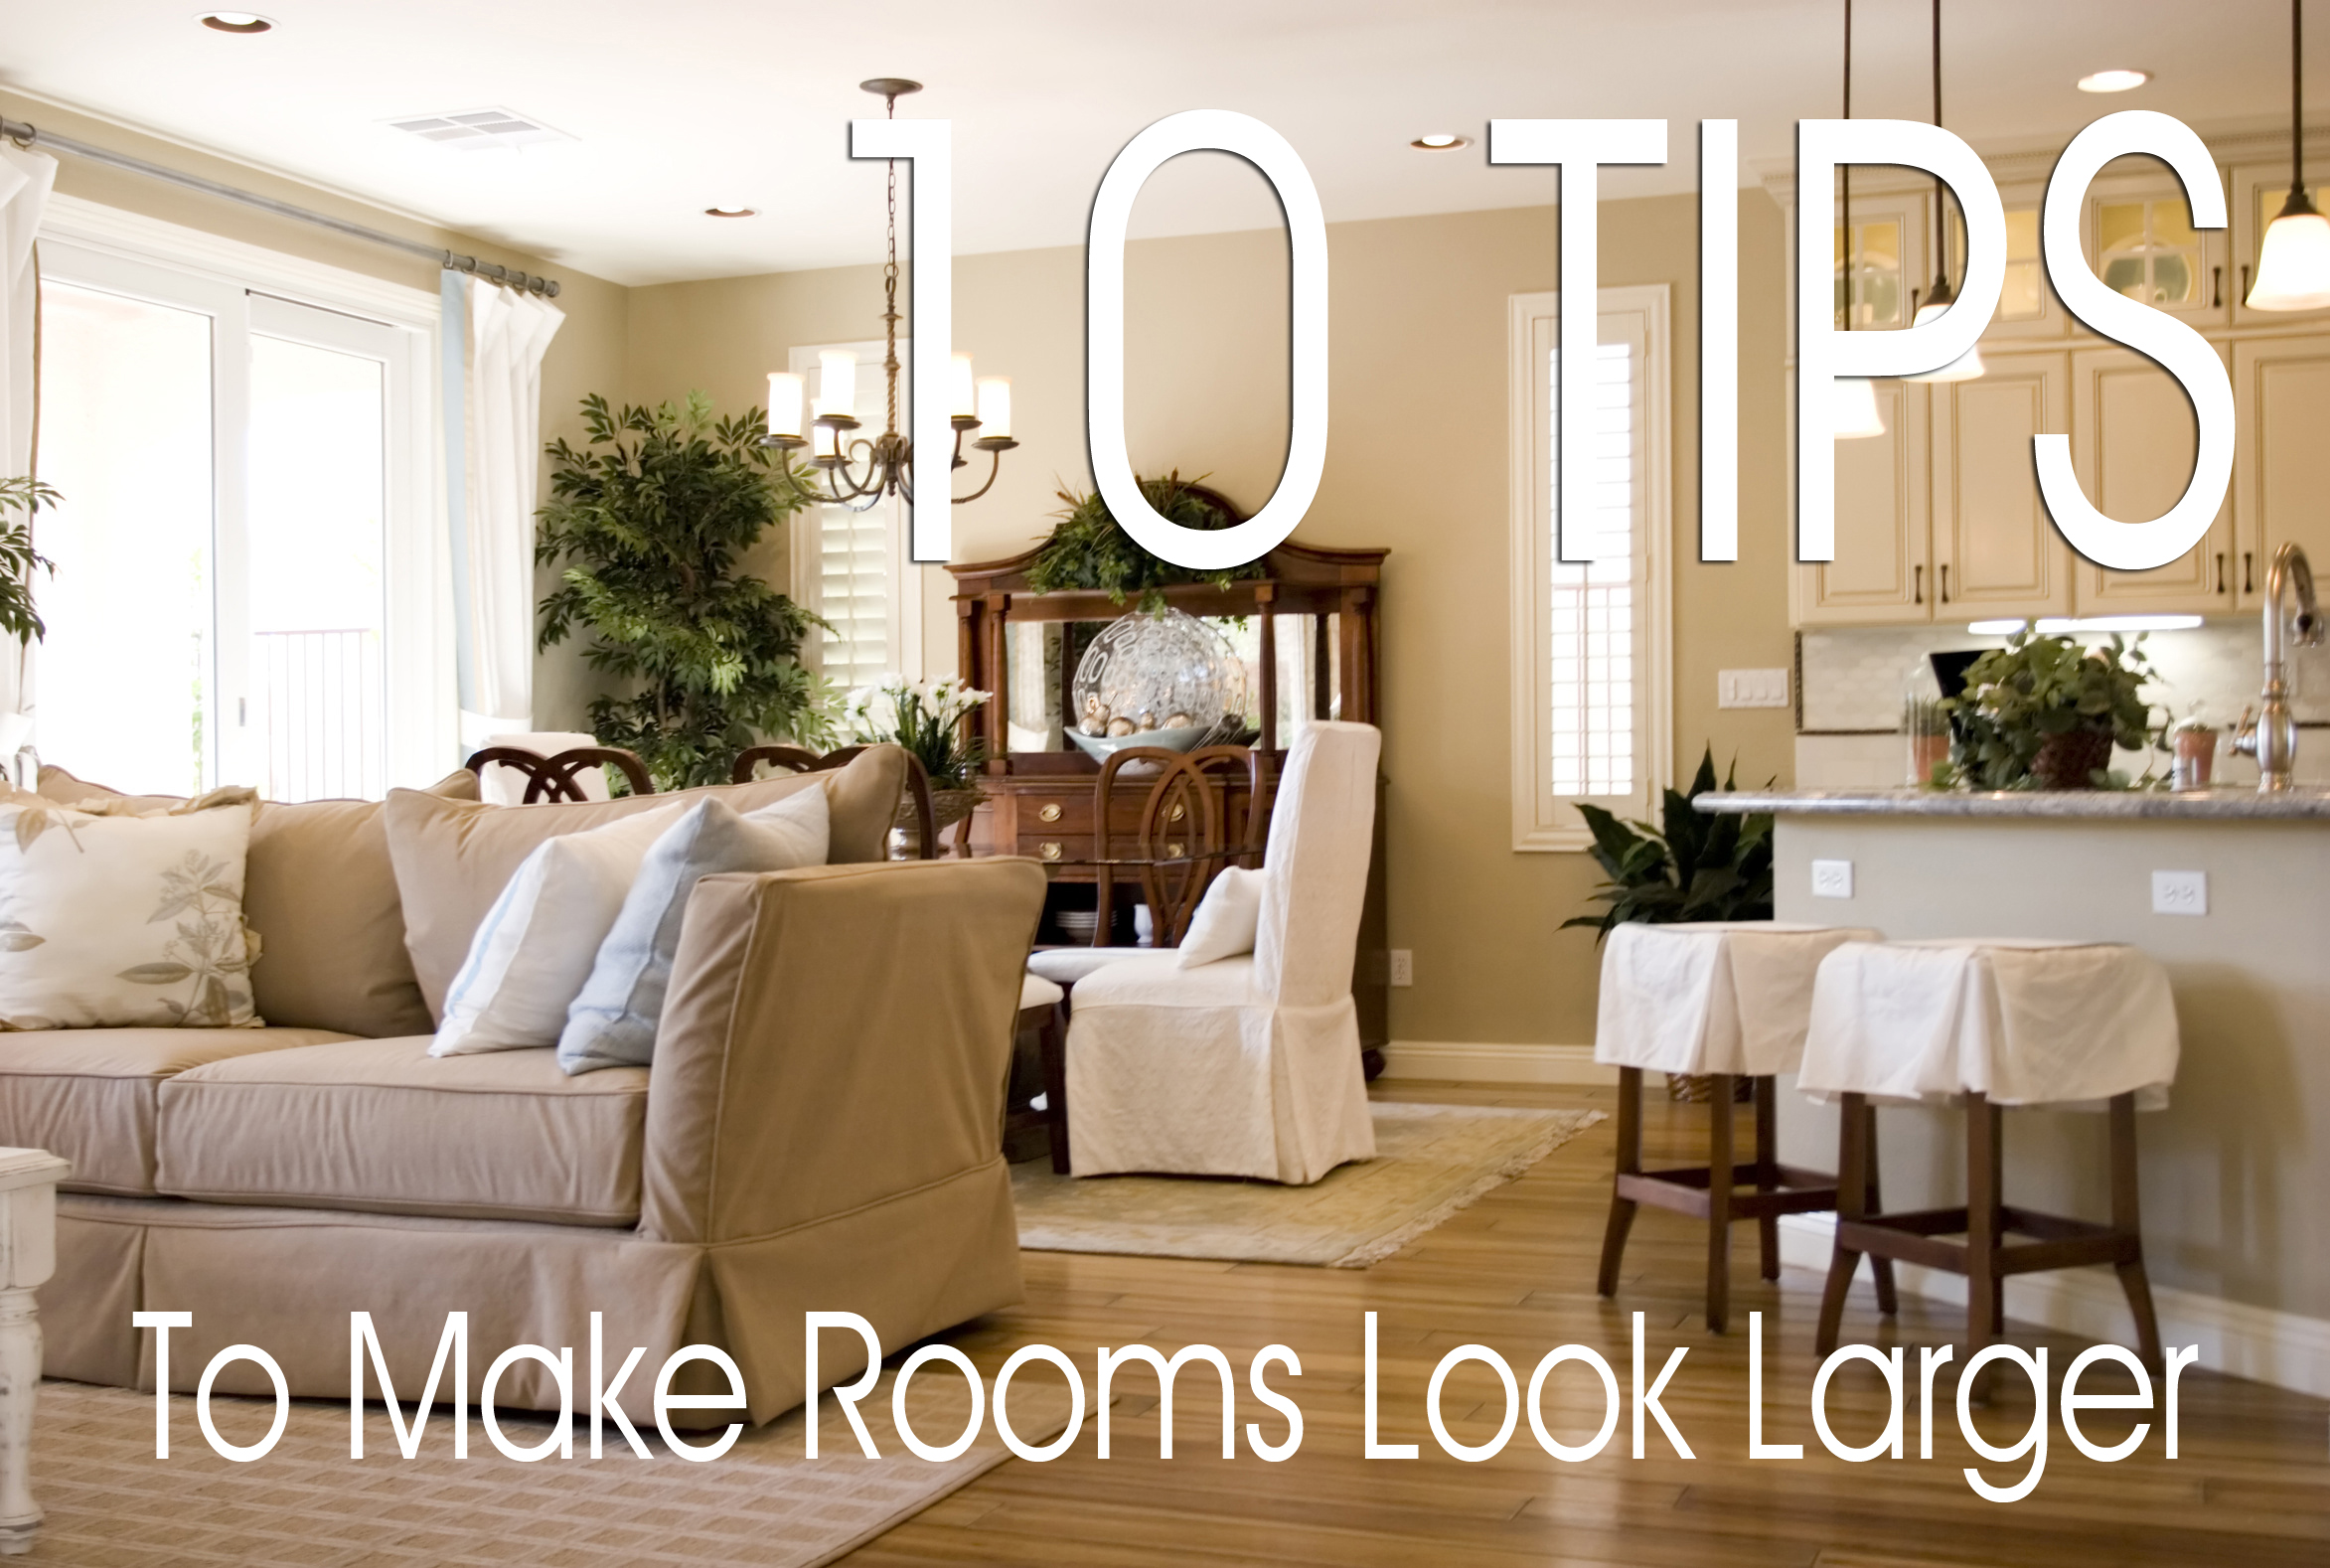 How To Make Small Rooms Look Larger